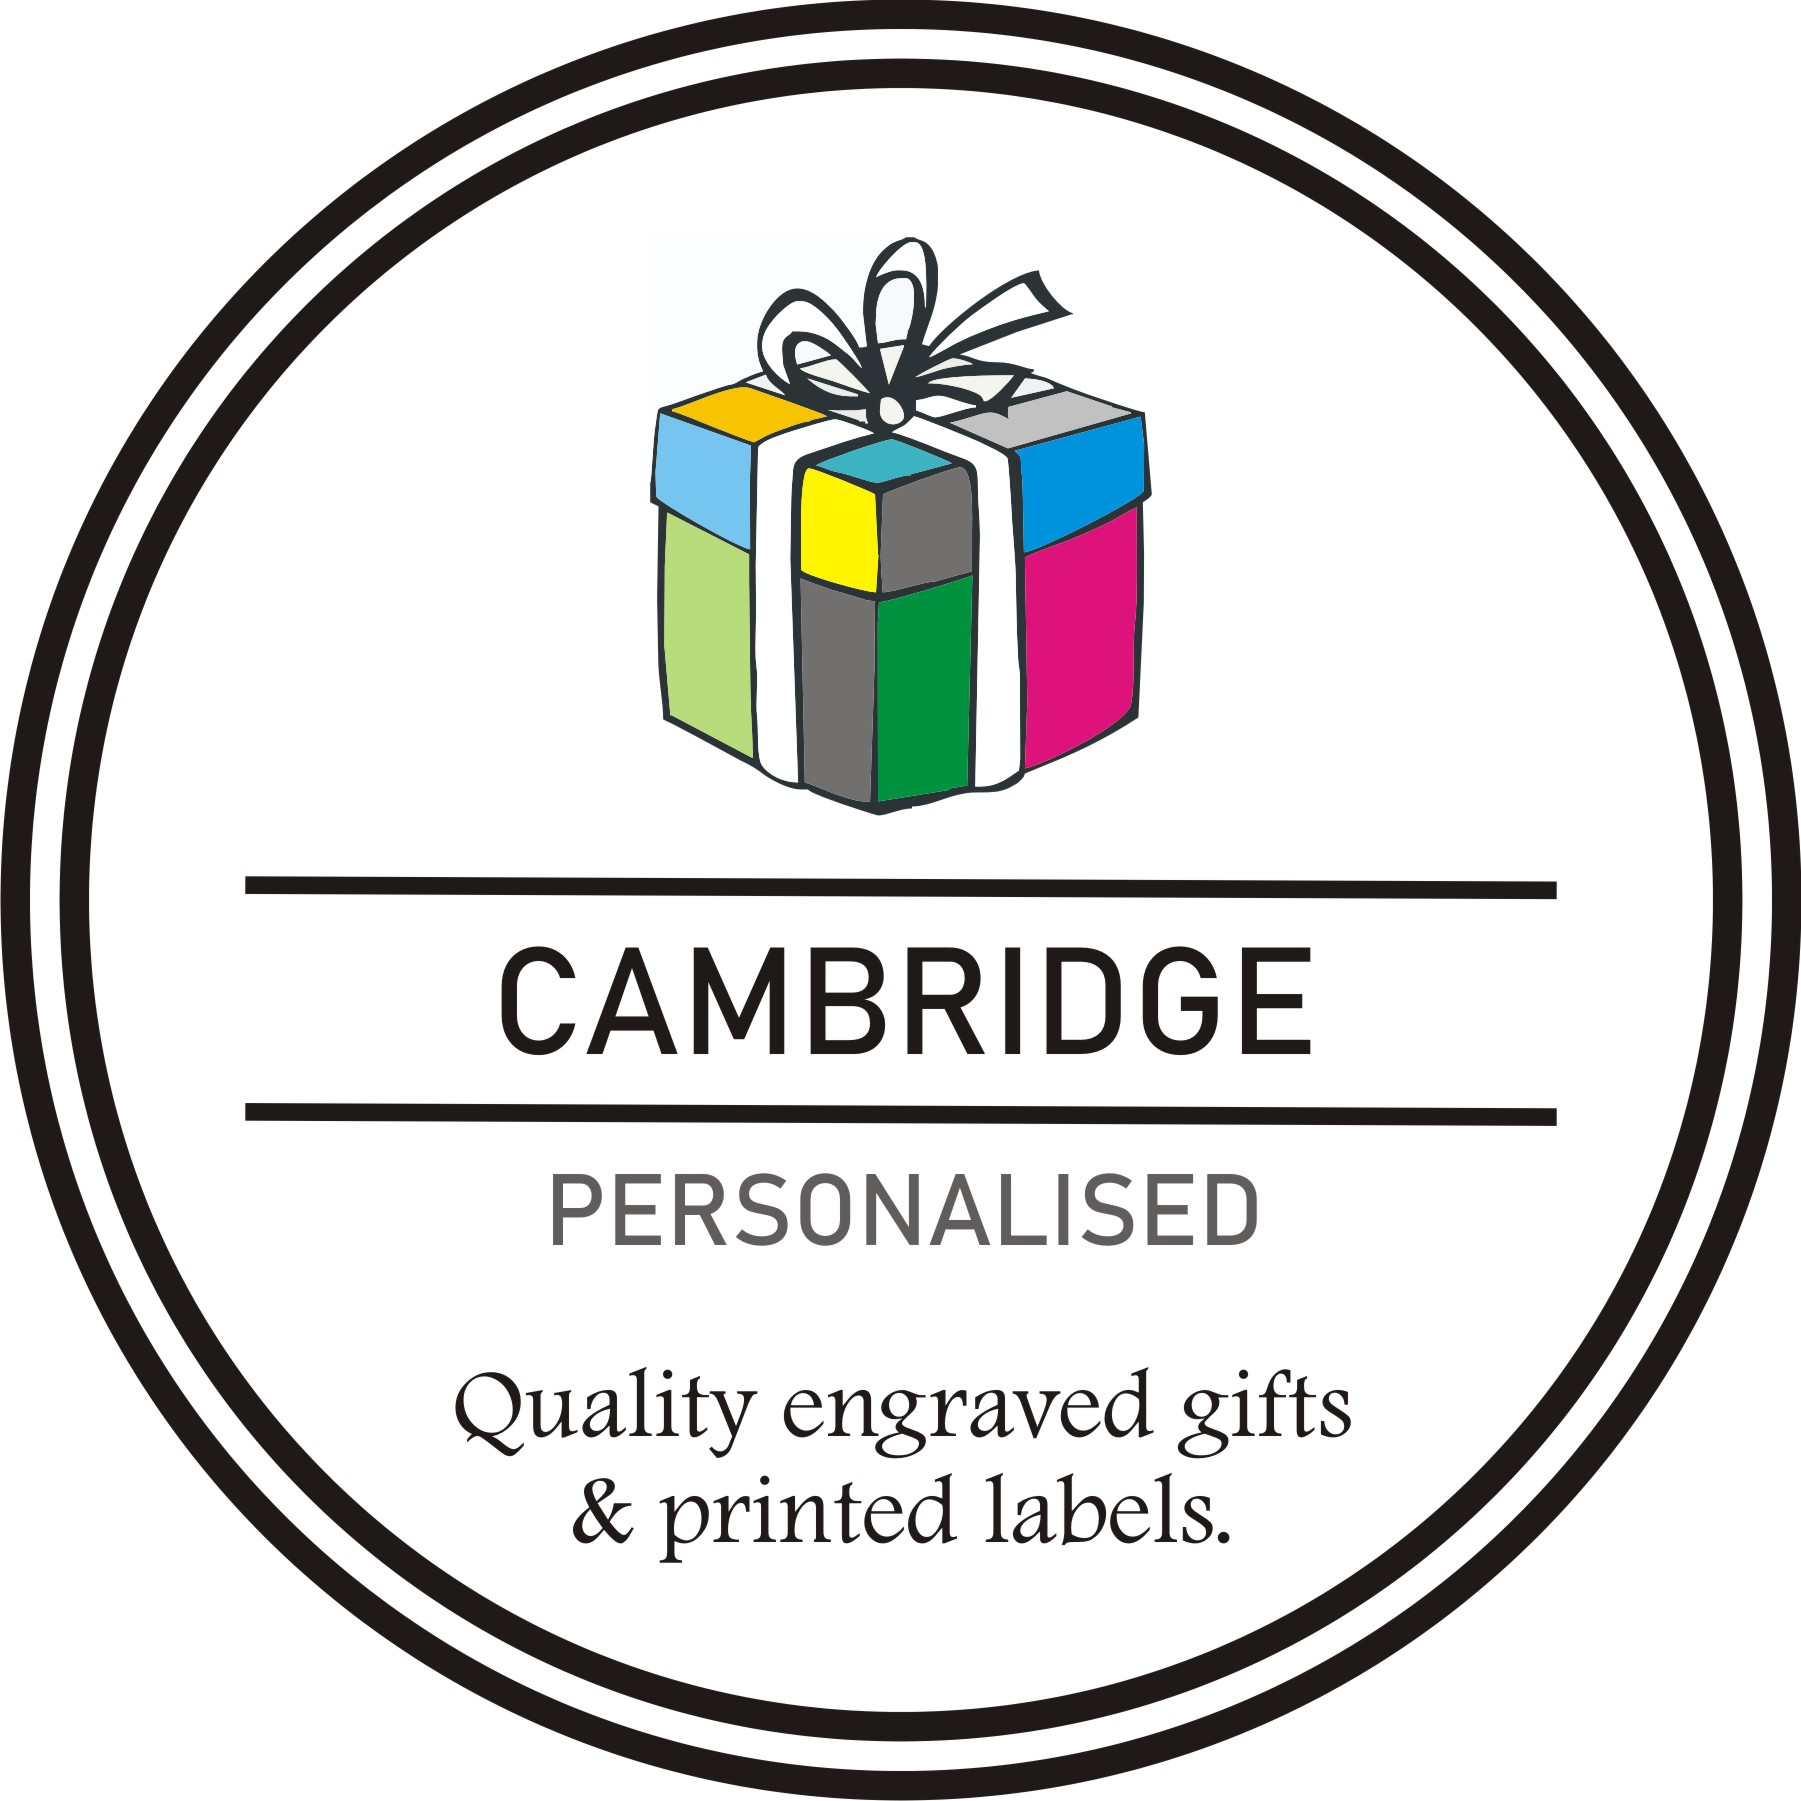 Cambridge Personalised Coupons and Promo Code